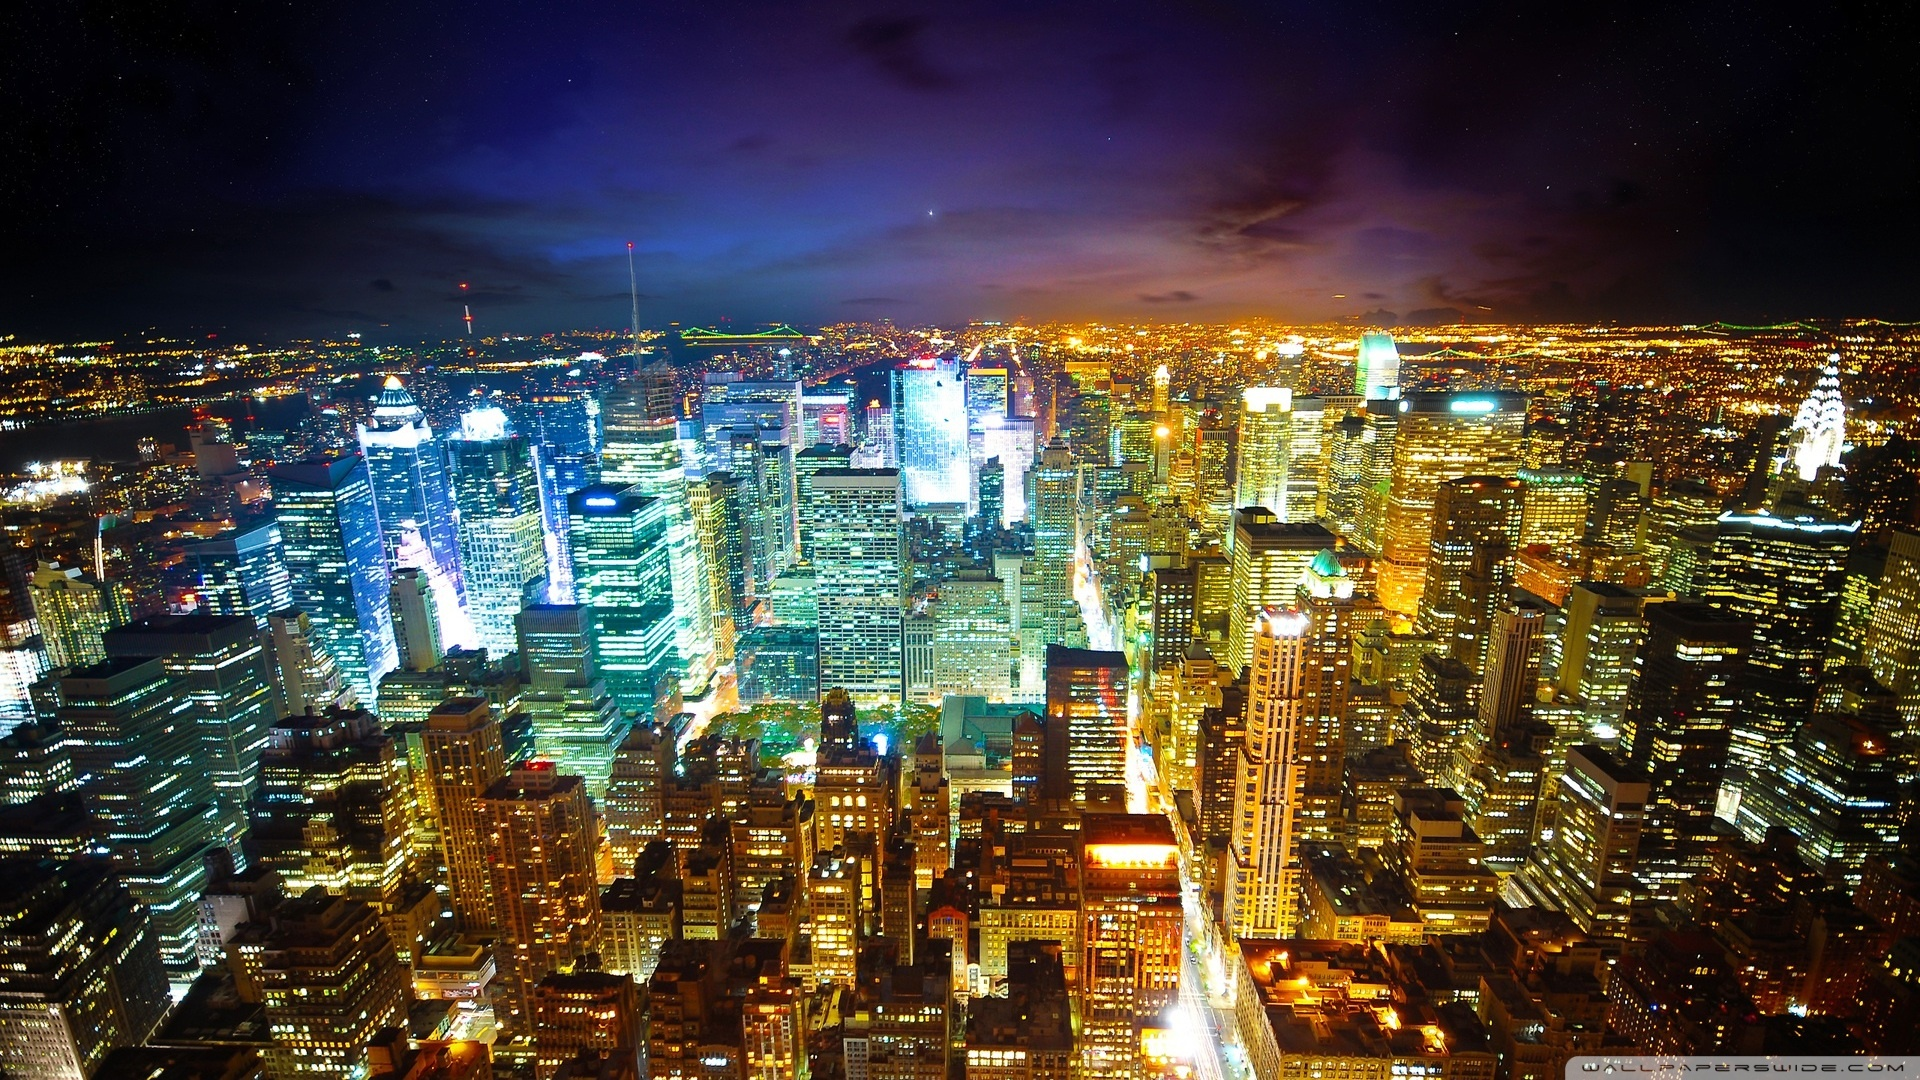 Free Download New York City At Night 2 Wallpaper 1920x1080 New